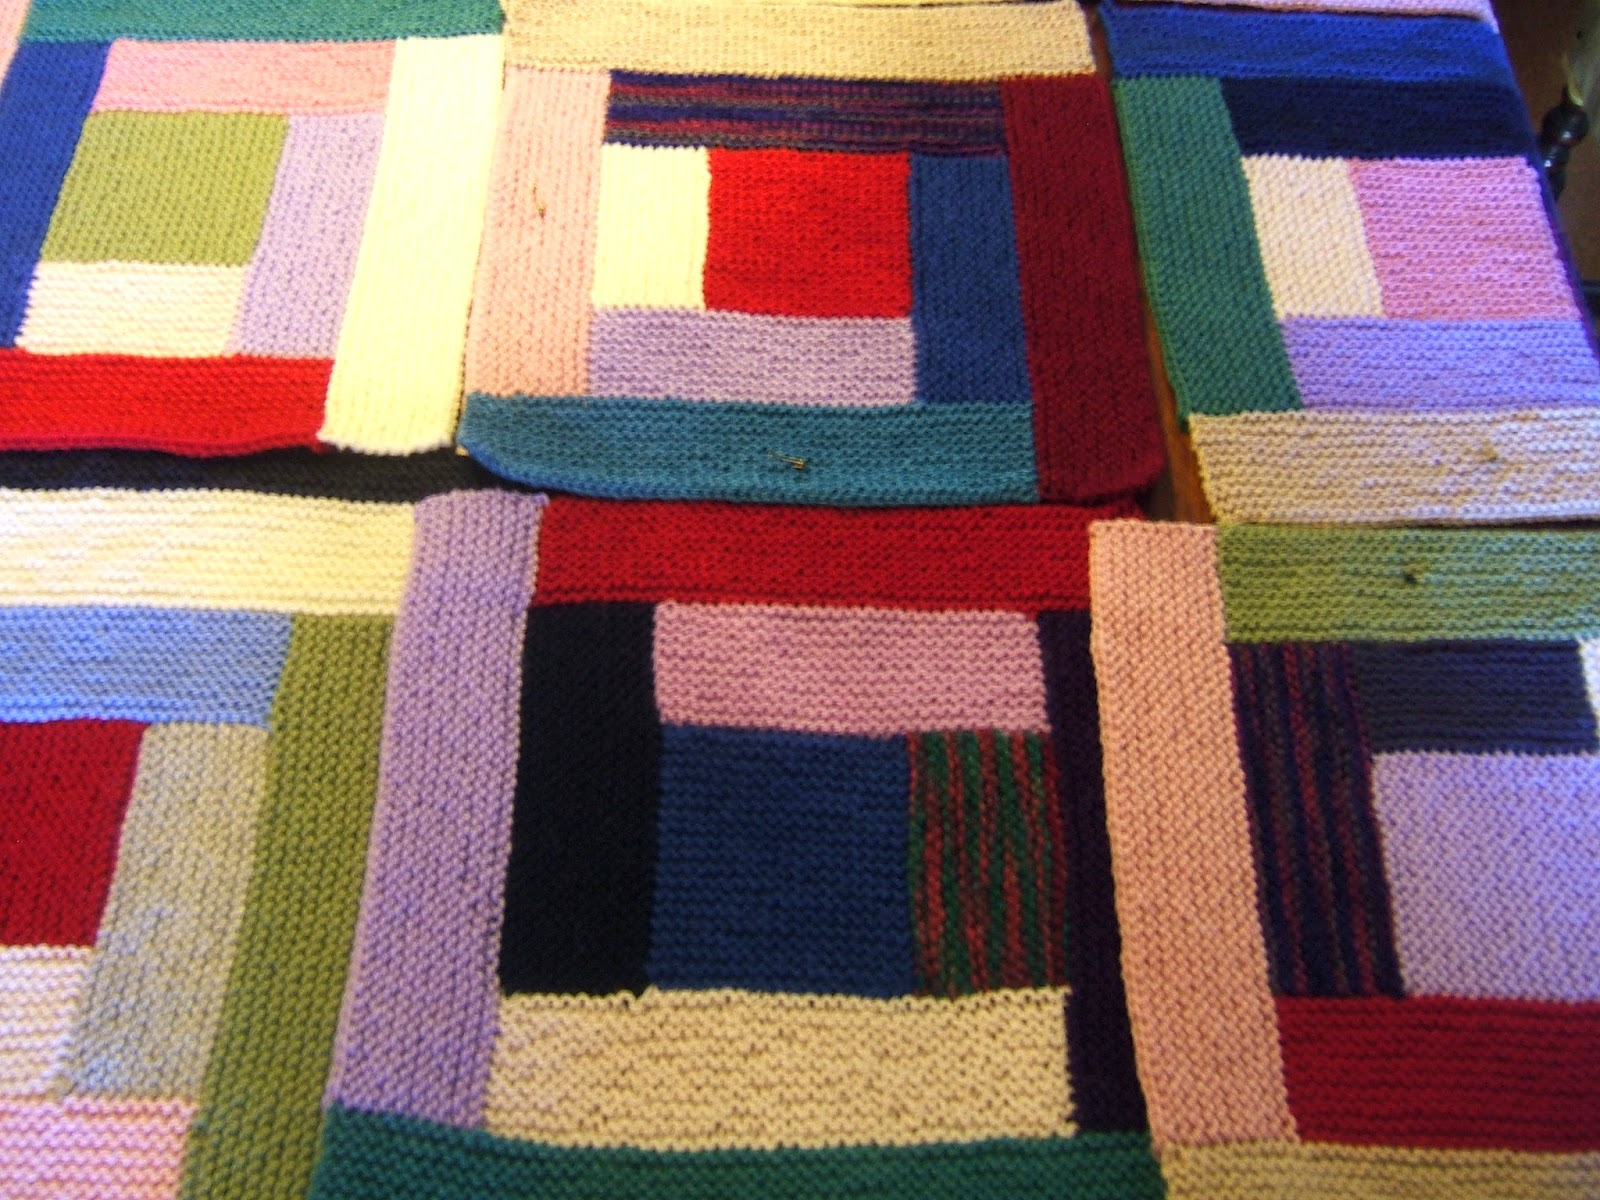 aussie knitting threads: Log Cabin knitted blanket - finished